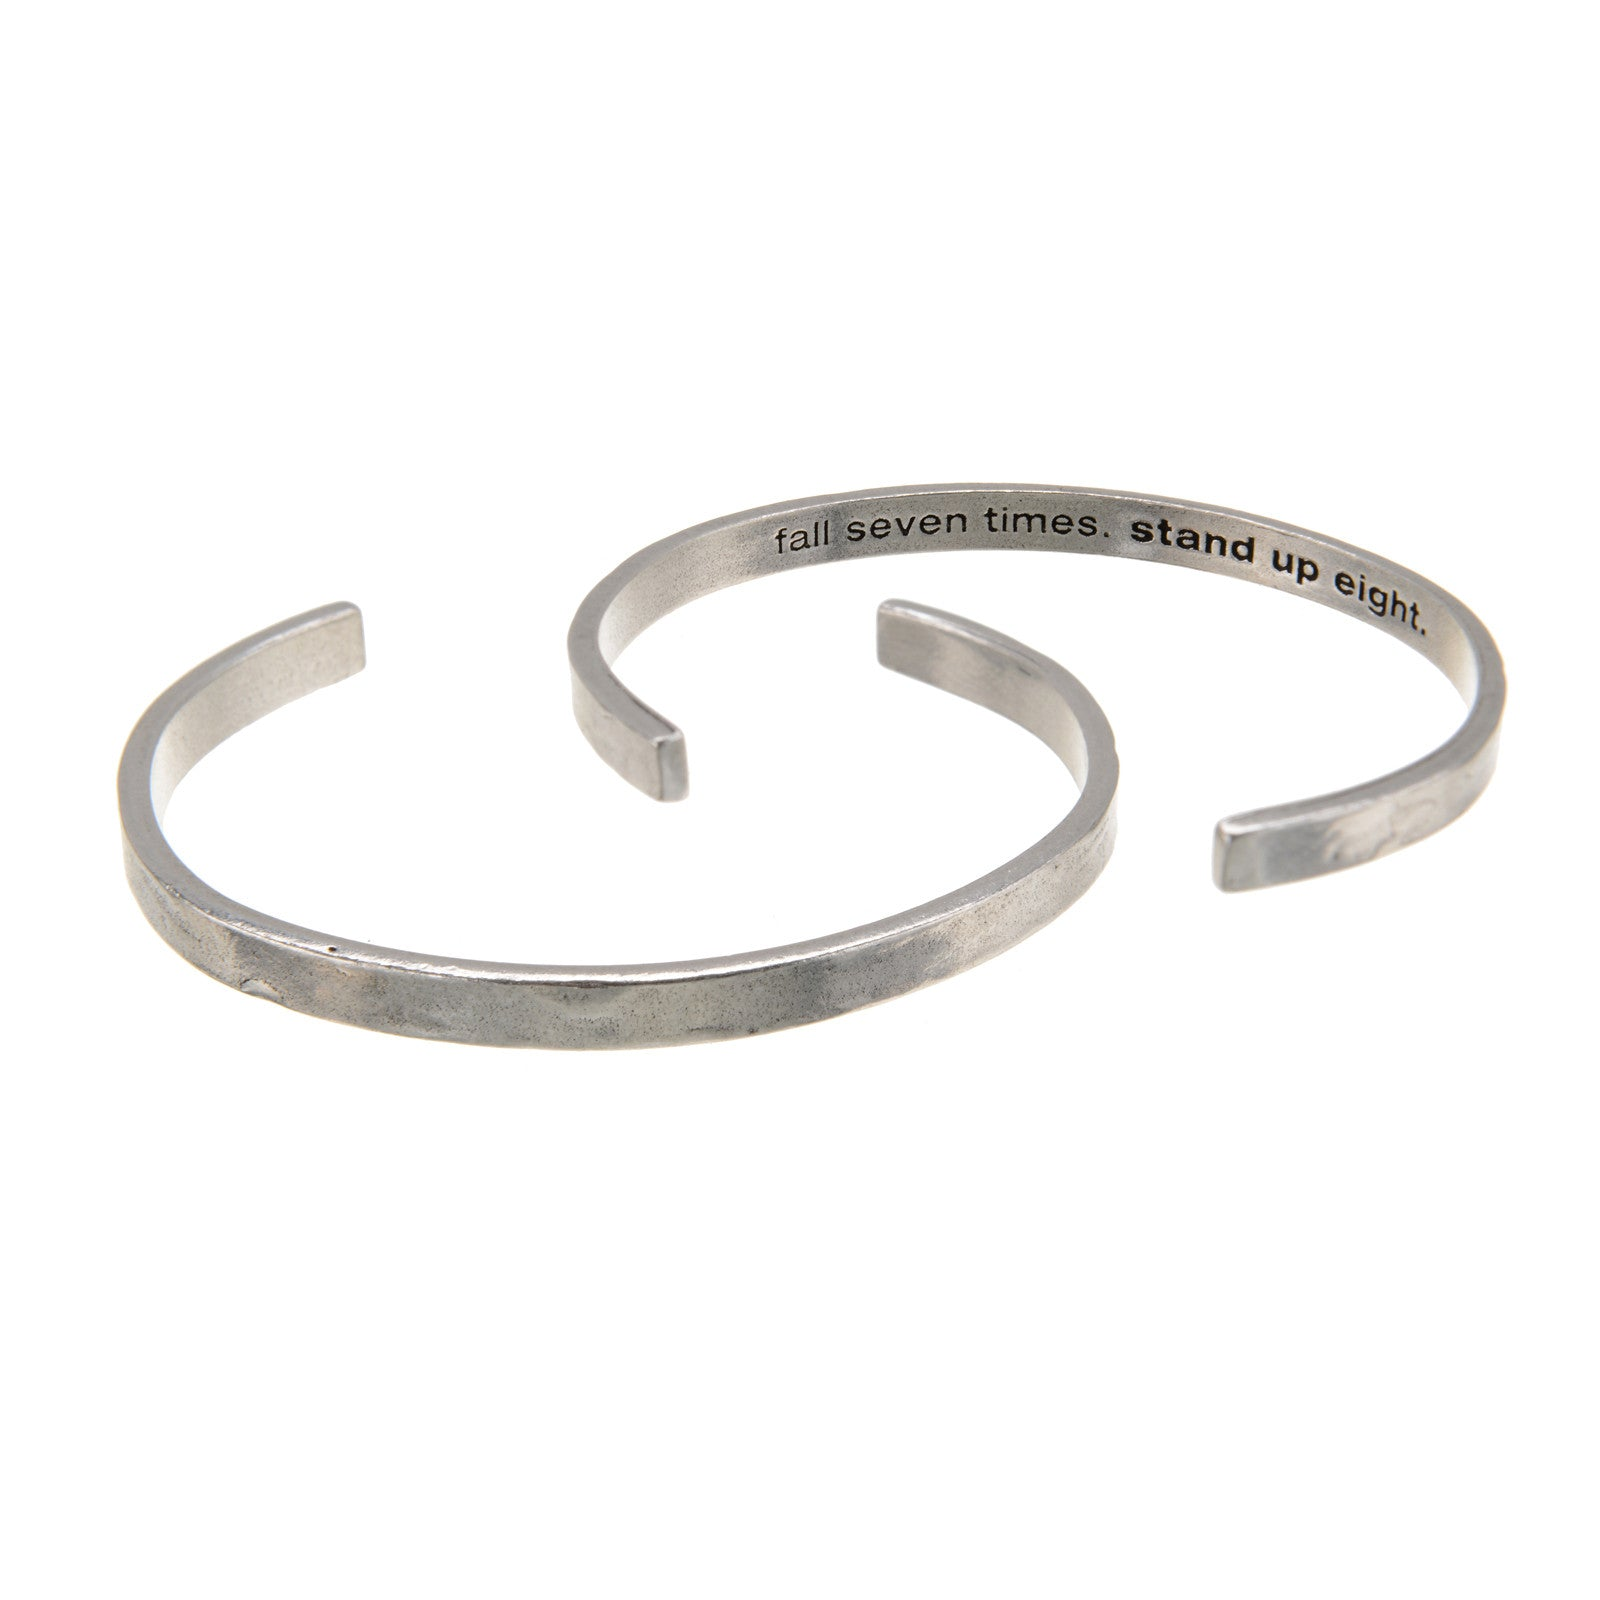 Fall Seven Times, Stand Up Eight DUDE Cuff Bracelet - Whitney Howard Designs